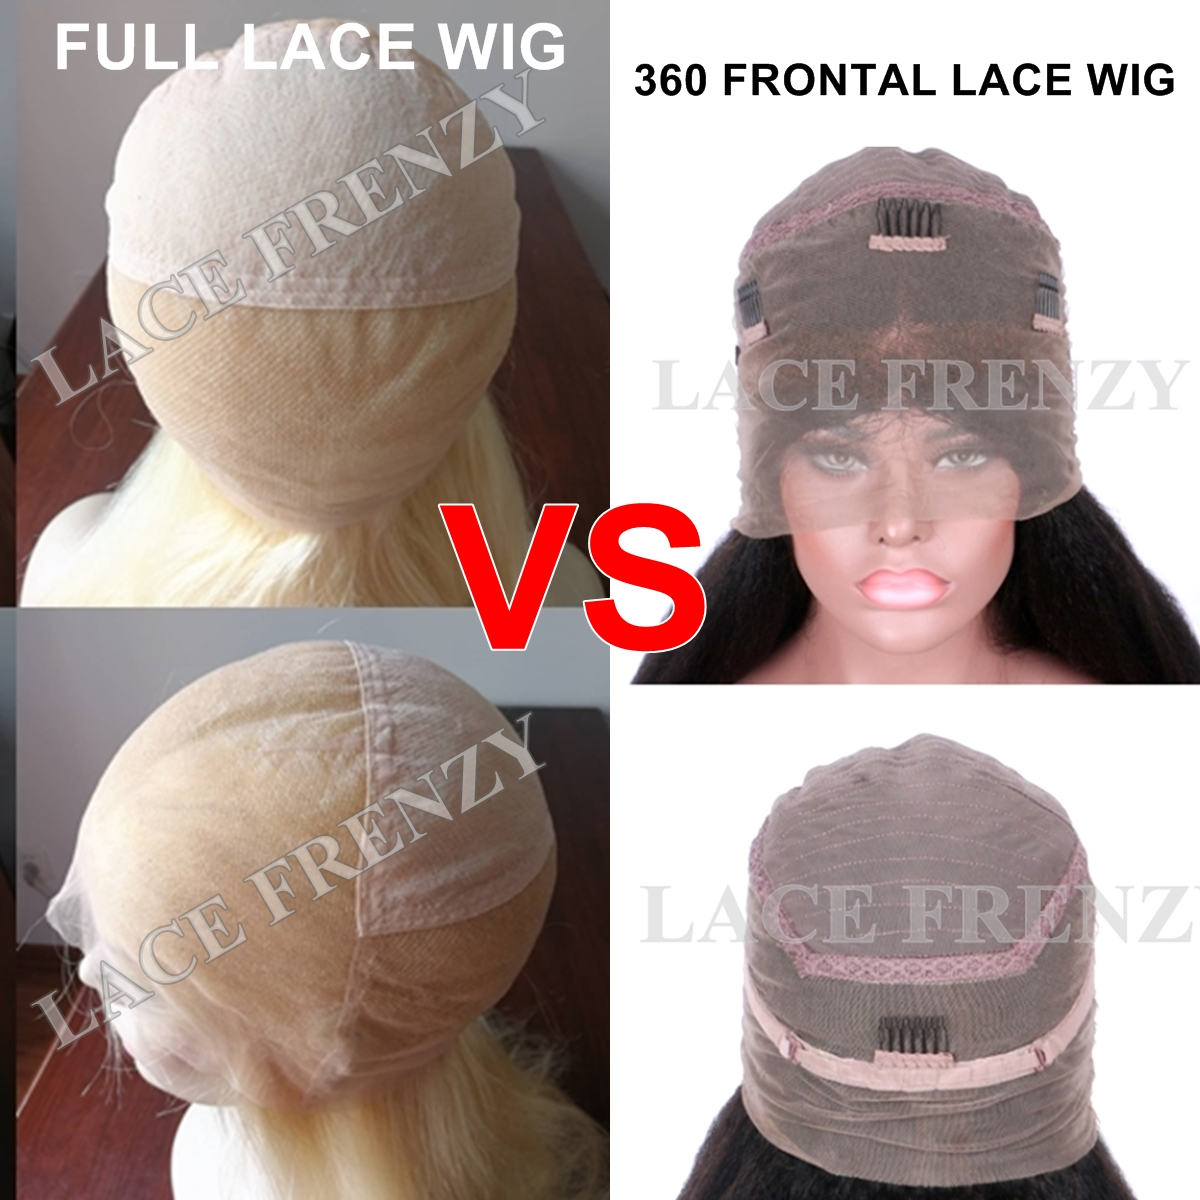 360 Frontal Lace Wigs Vs. Full Lace Wigs